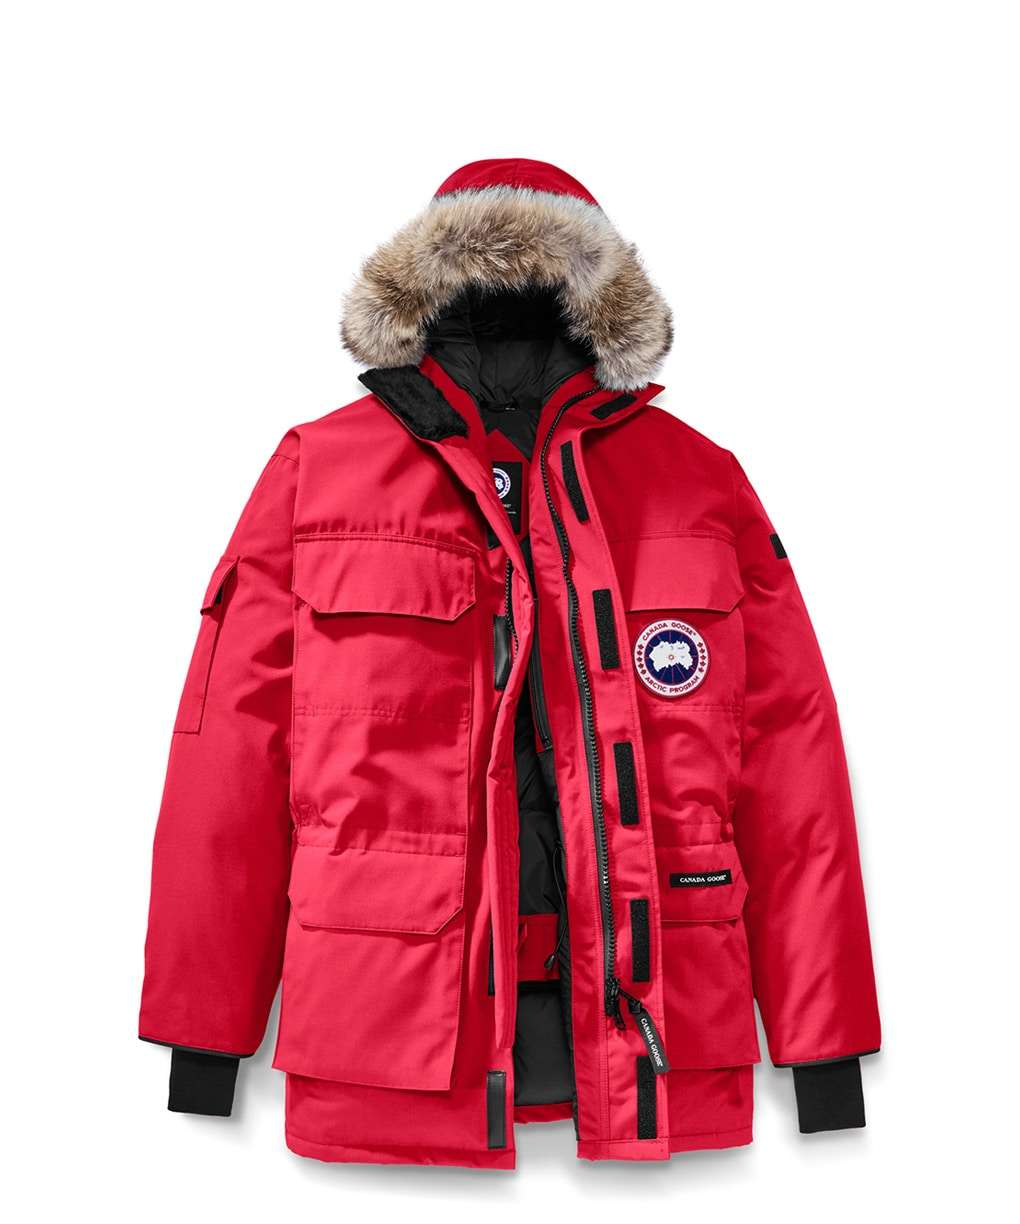 EXPEDITION PARKA FUSION FIT(2620400010-3060)|Heritage|SHOP|メンズ|カナダグース (CANADA GOOSE) 日本公式サイト